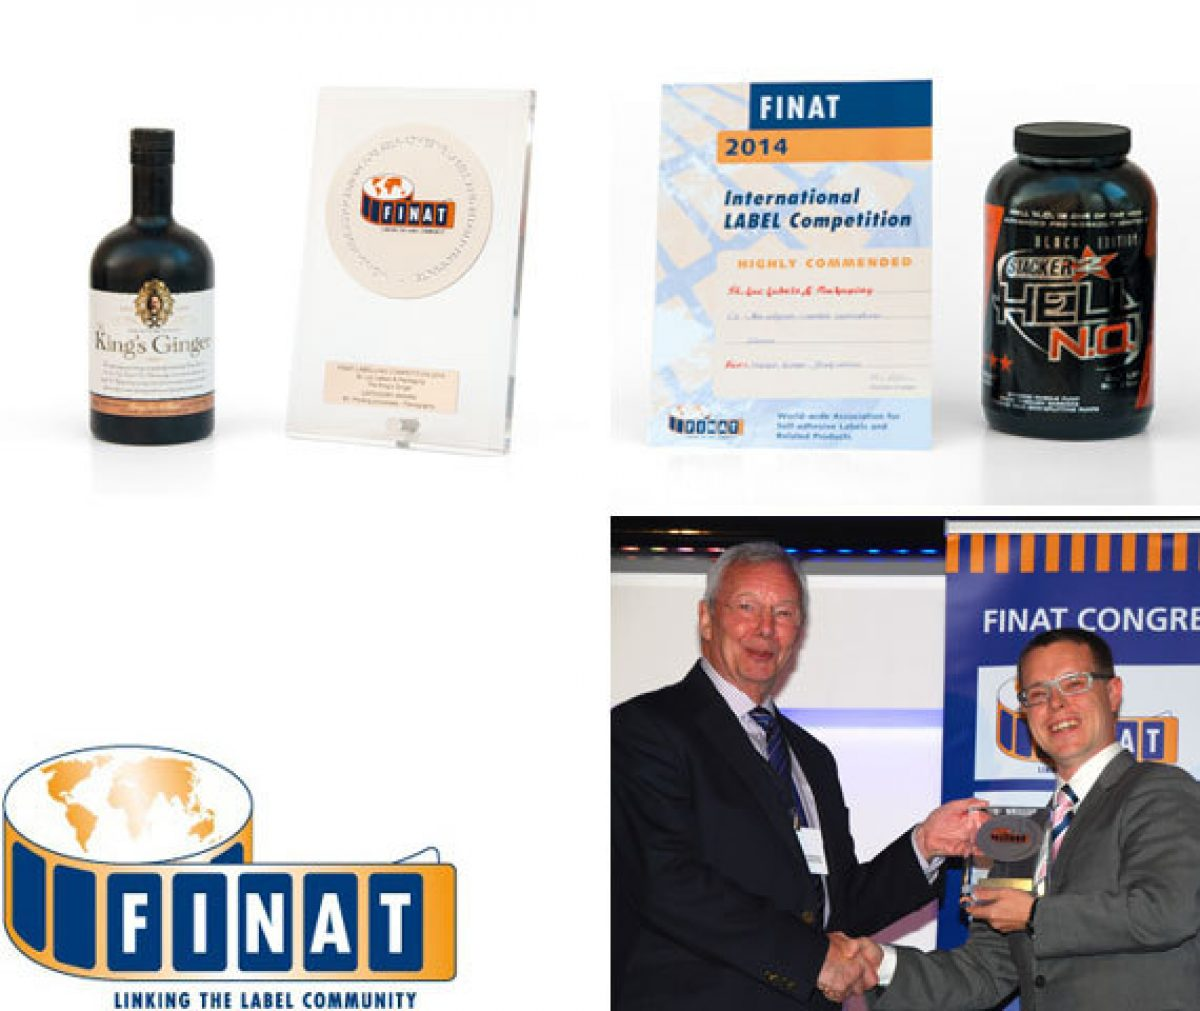 FINAT Award : St-Luc is nr 1!